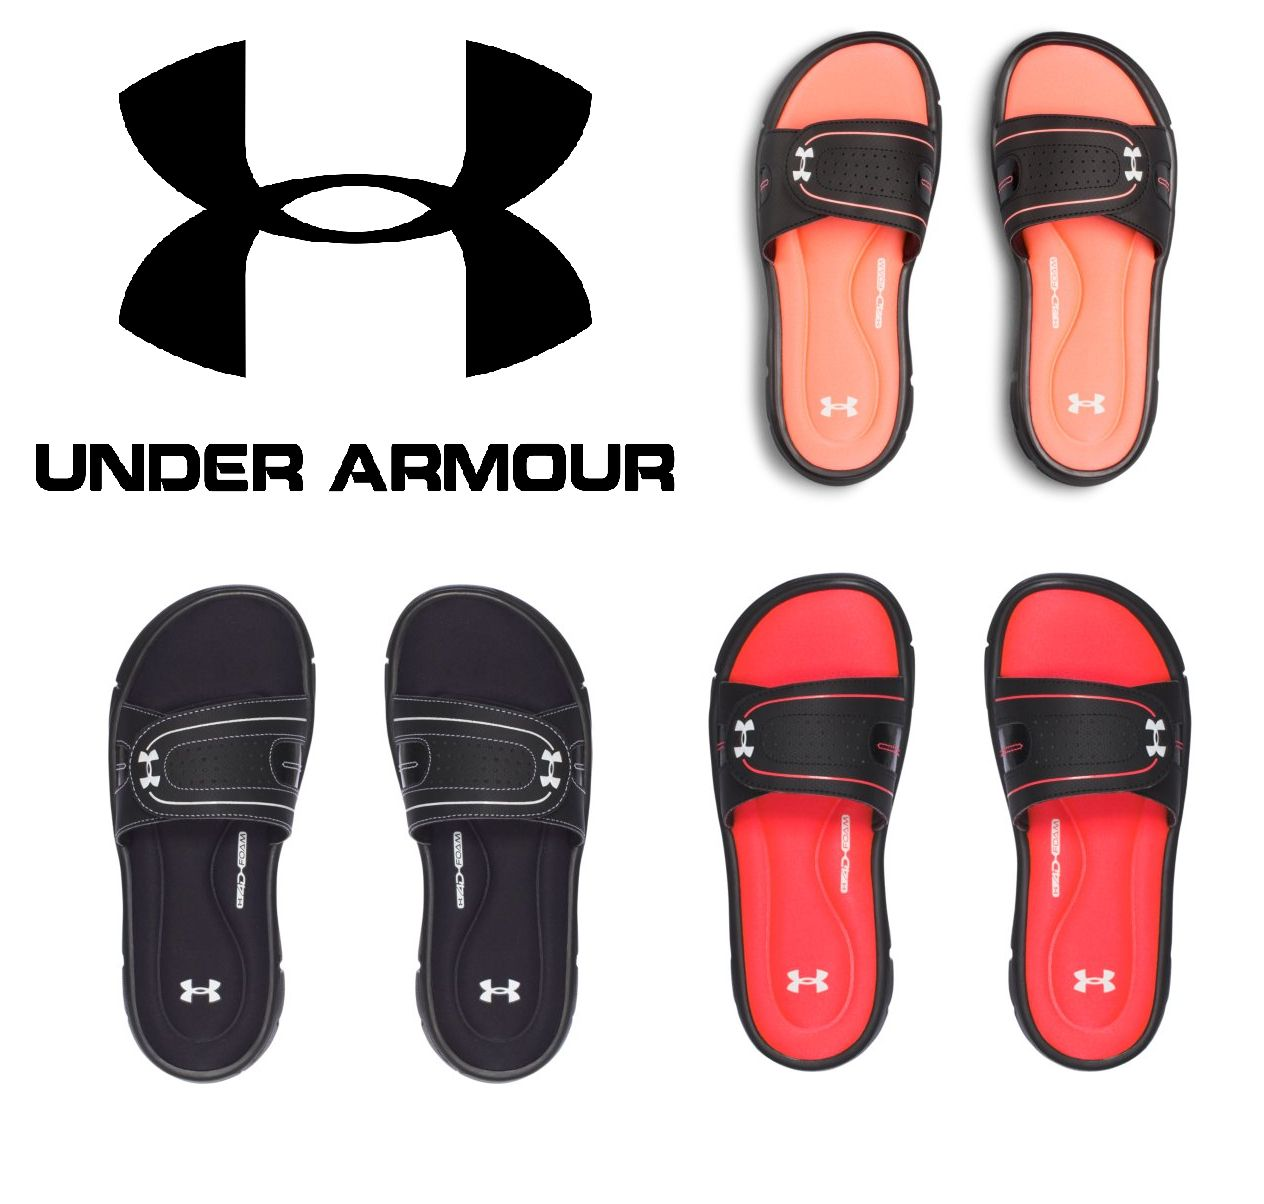 8441e5b812b Sandals 62107  Under Armour Women S Ignite Viii Sandals Slides - New - Free  Ship - 1287319 -  BUY IT NOW ONLY   23.99 on  eBay  sandals  under  armour  ...